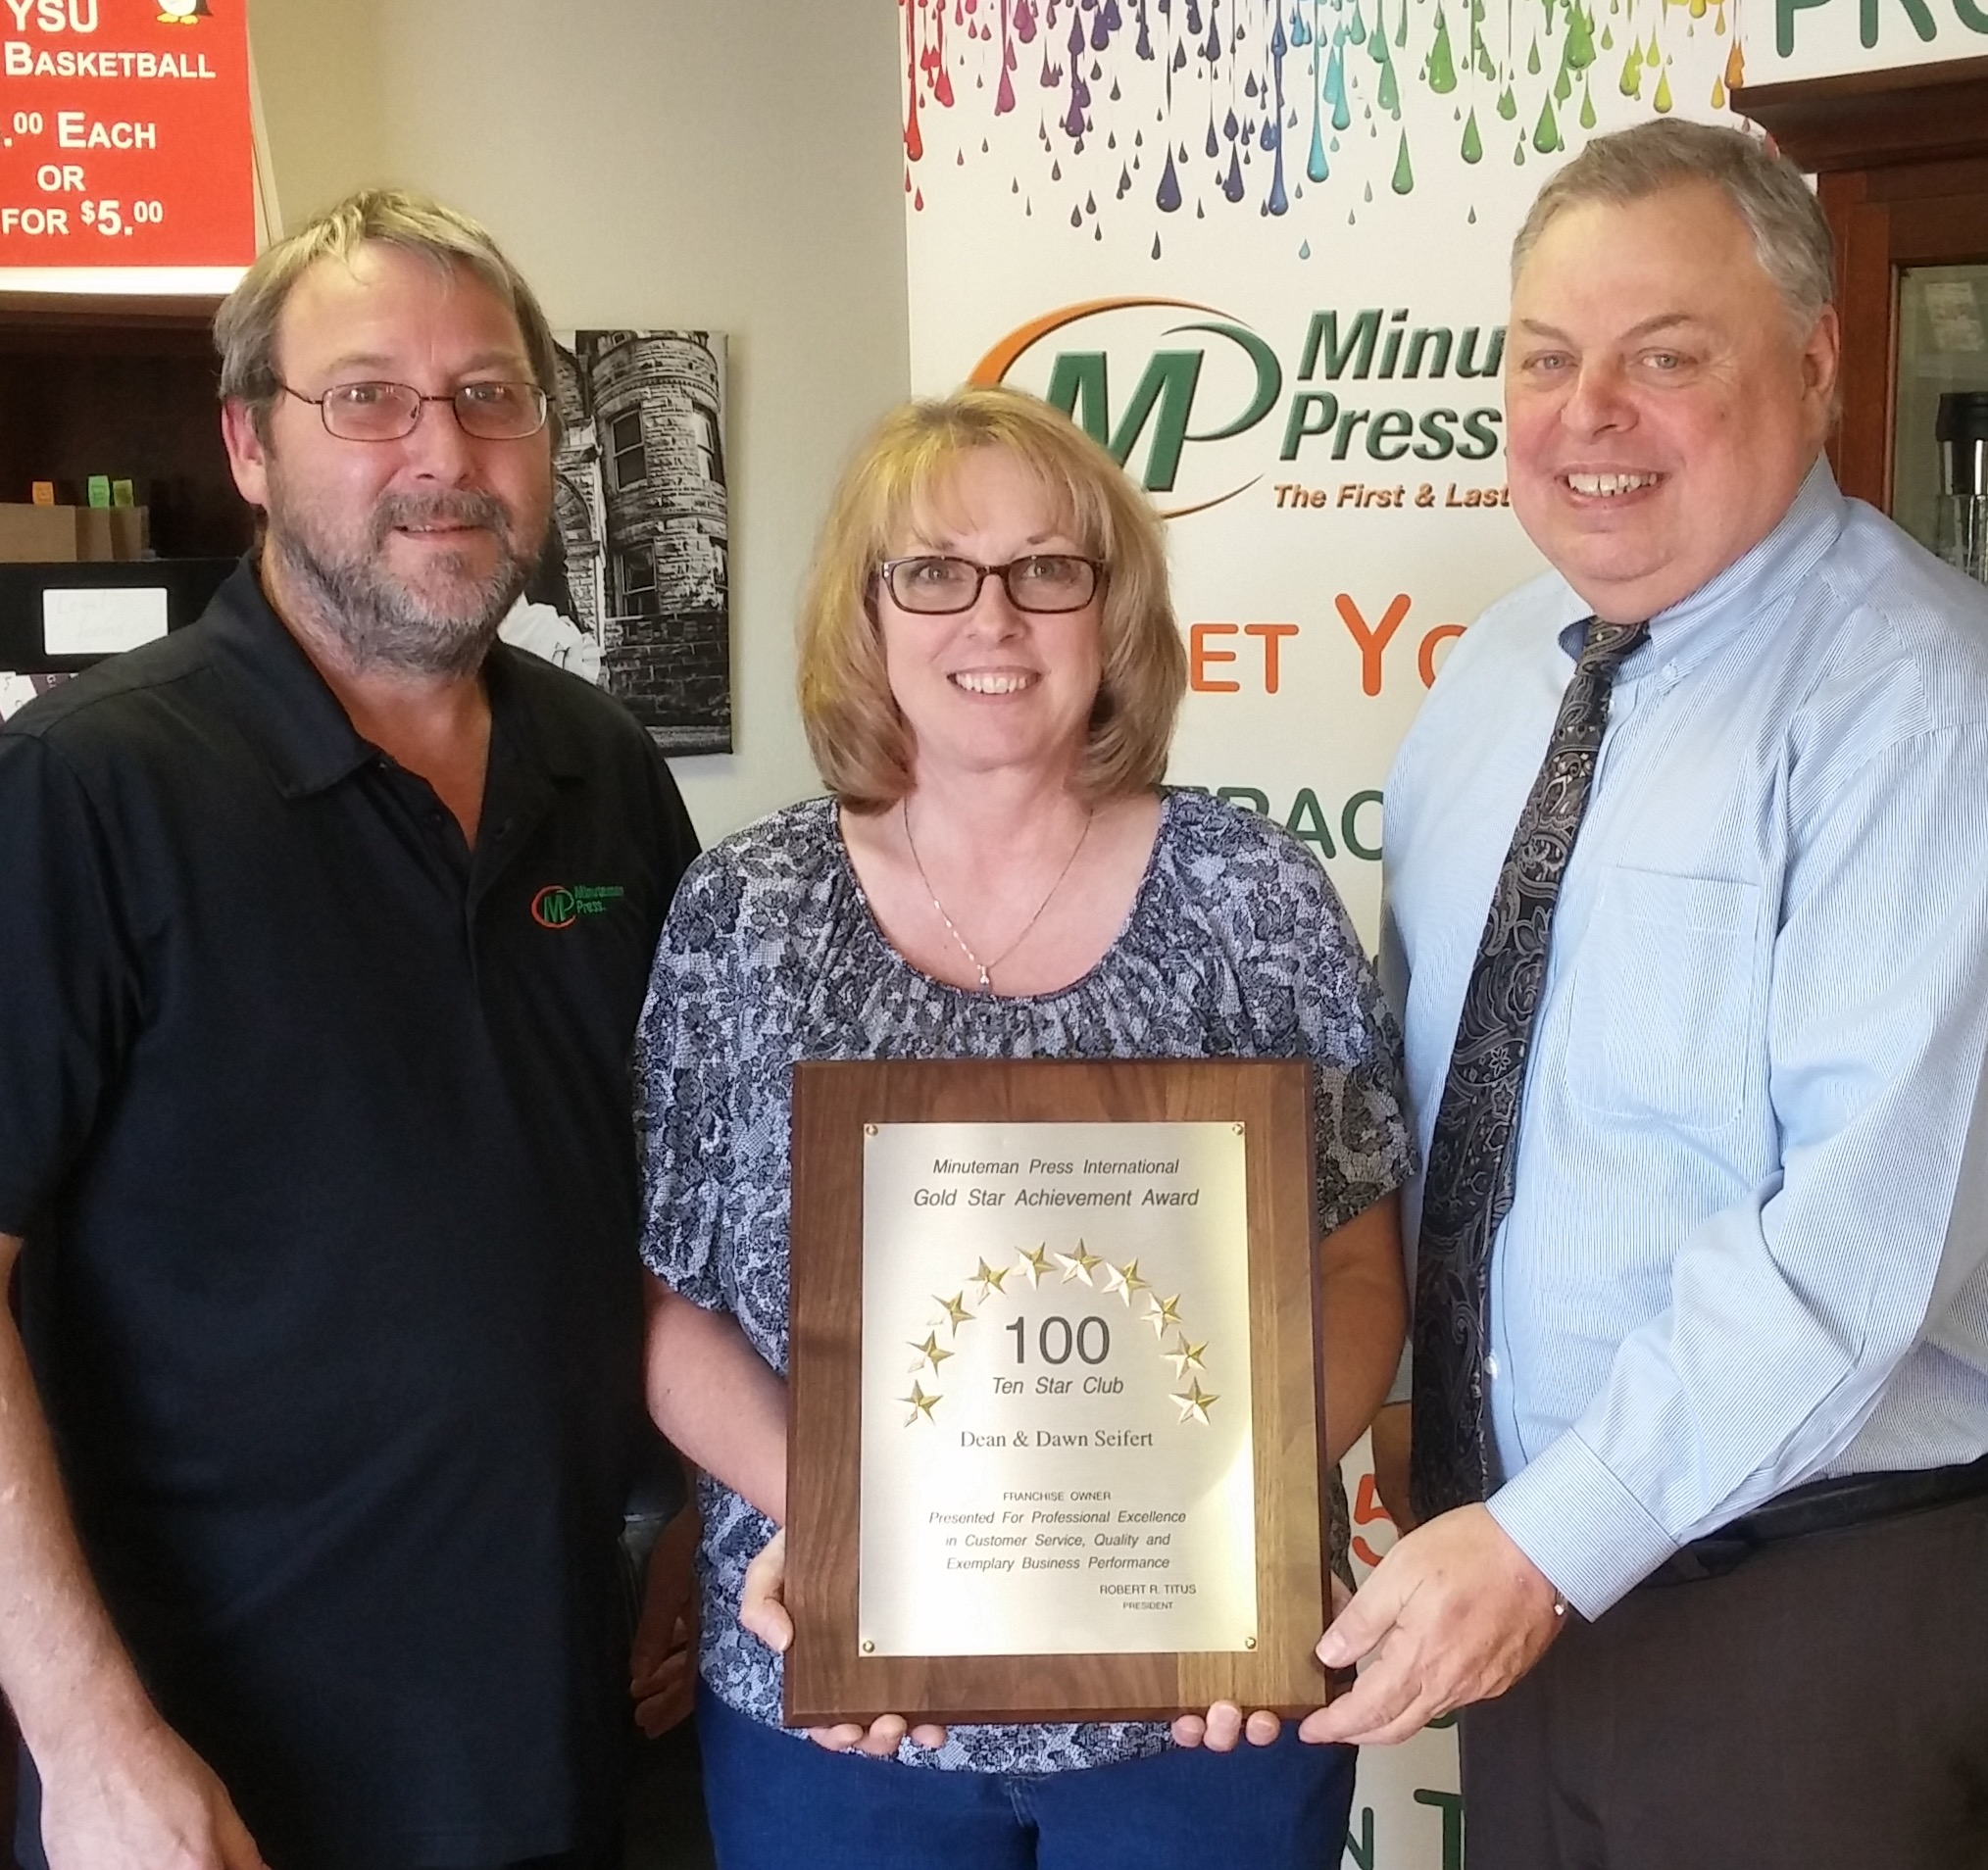 Youngstown, Ohio Minuteman Press franchise owners Dean Seifert (left) and Dawn Seifert (center), along with Gary Nowak (right), Minuteman Press International Regional Vice President for the Ohio region